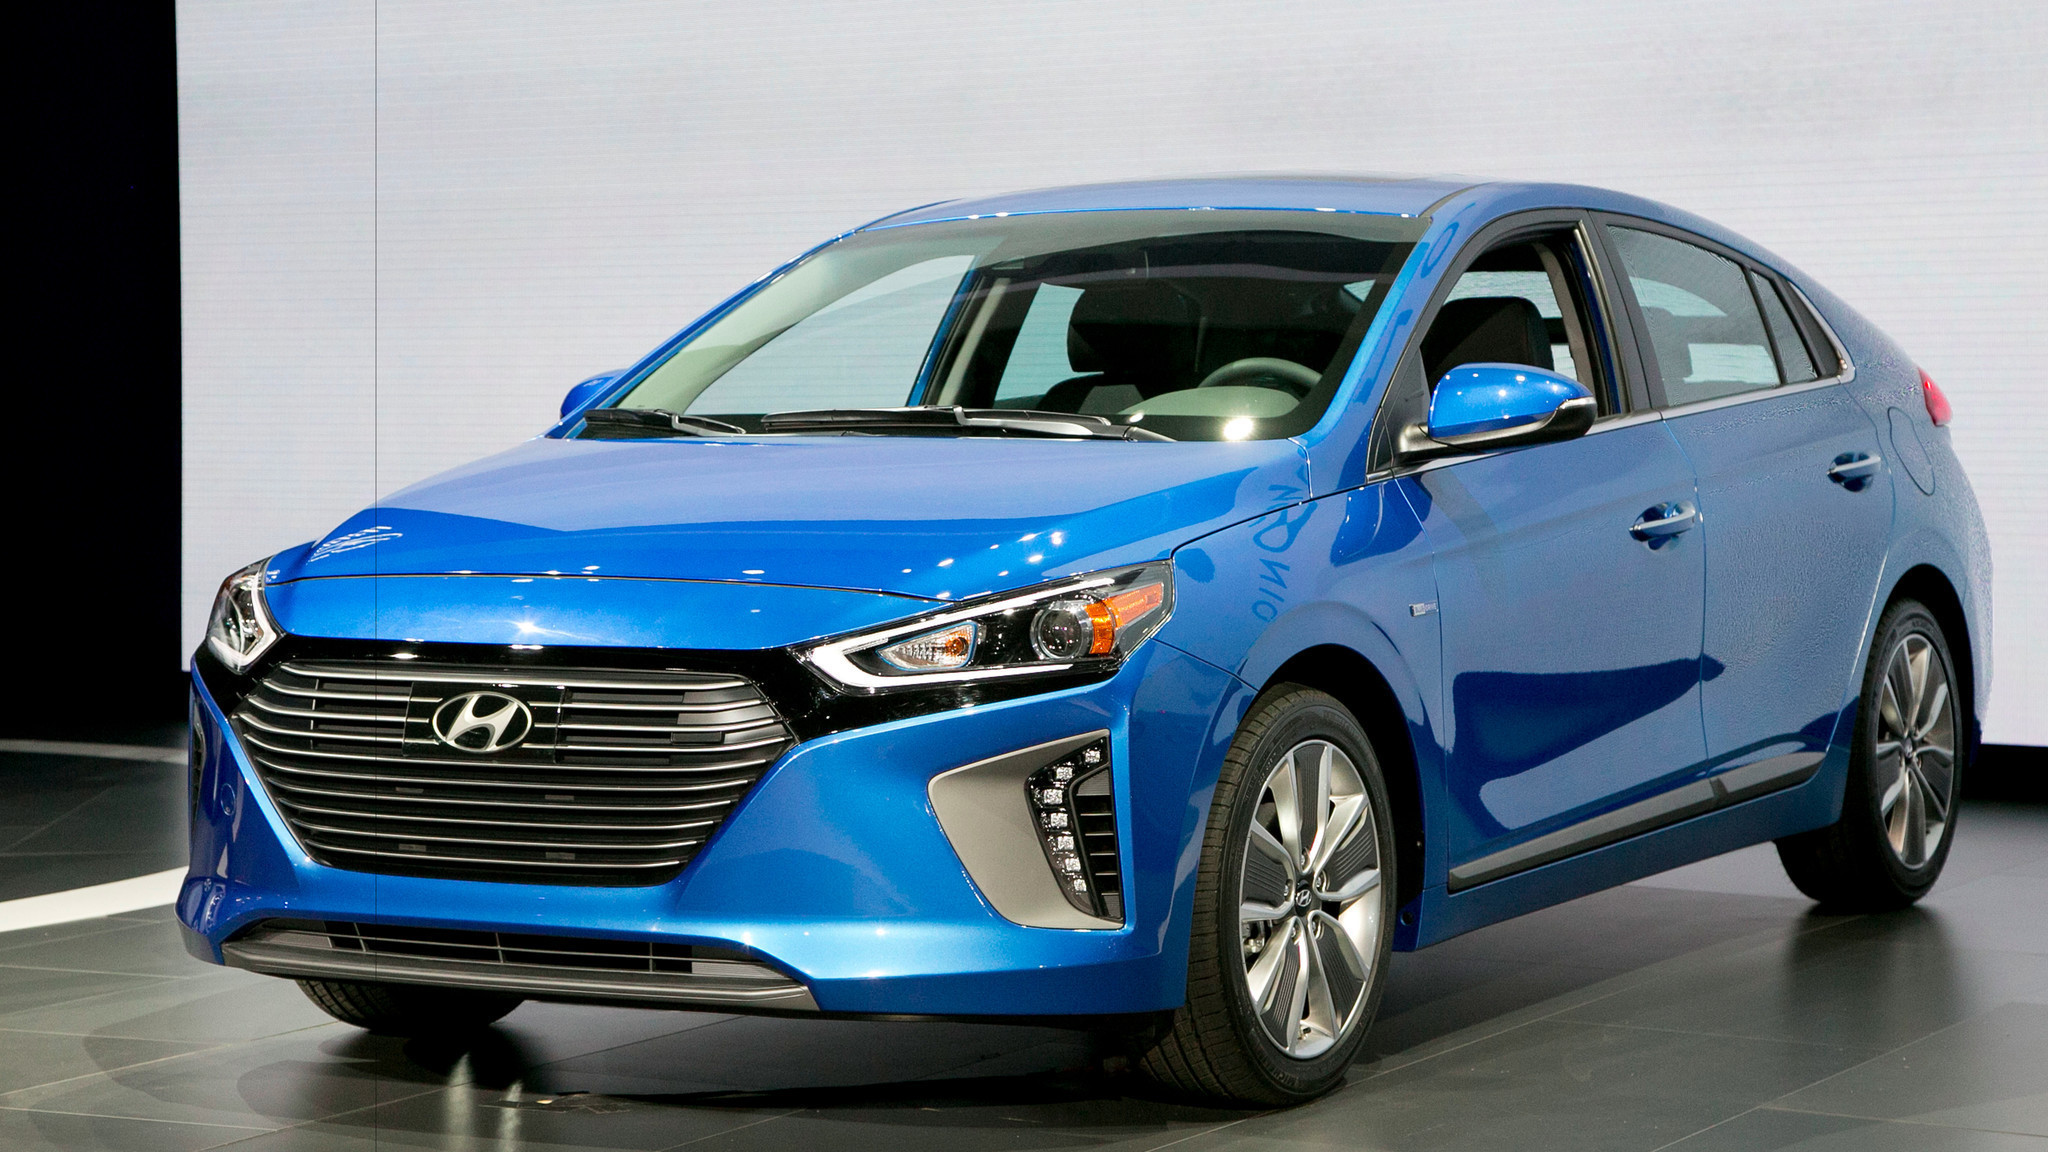 will hyundai 39 s eco friendly ioniq woo hearts away from prius la times. Black Bedroom Furniture Sets. Home Design Ideas